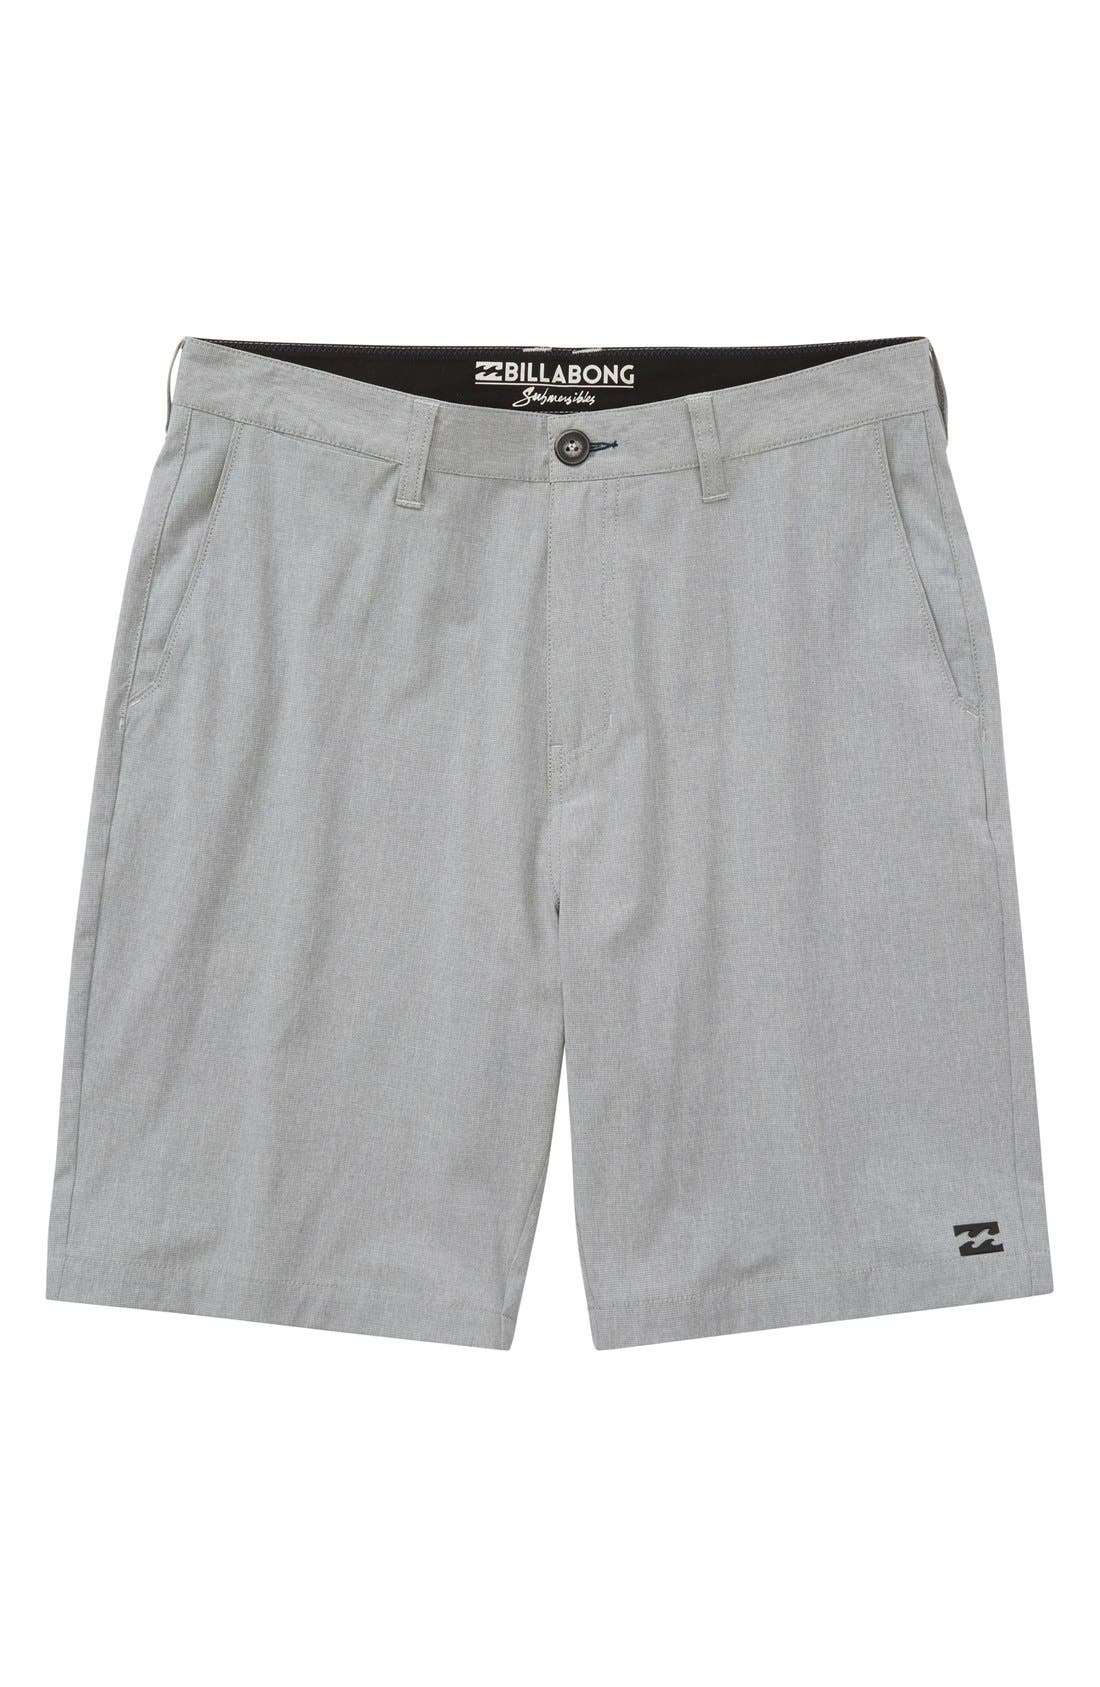 Crossfire X Submersible Hybrid Shorts,                             Main thumbnail 6, color,